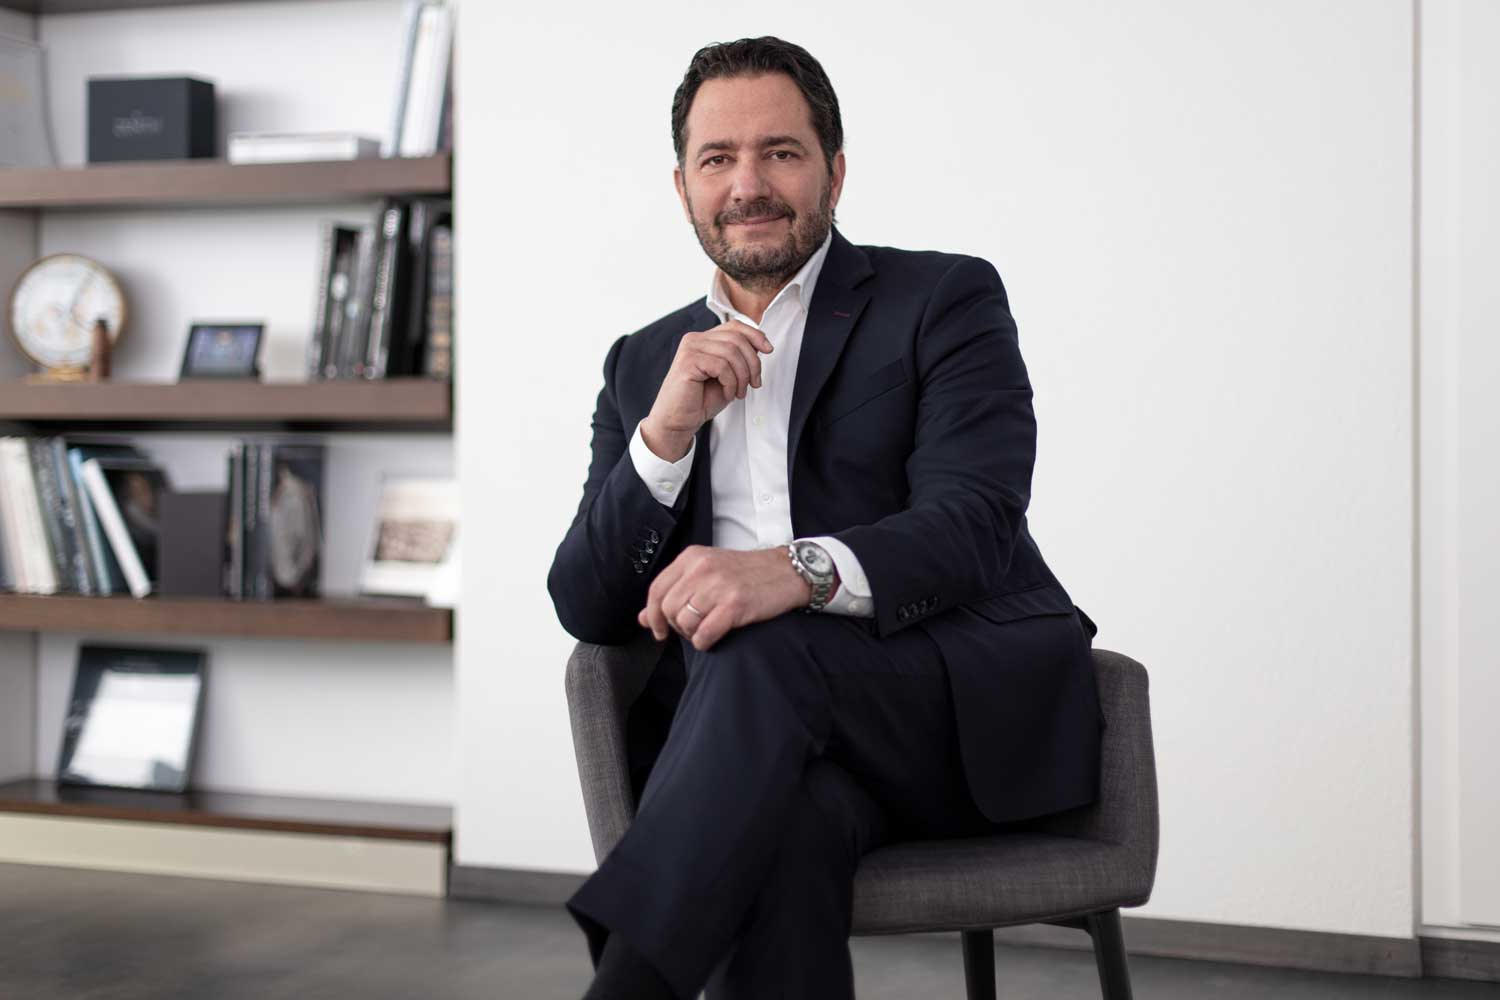 Julien Tornare, CEO of Zenith Watches